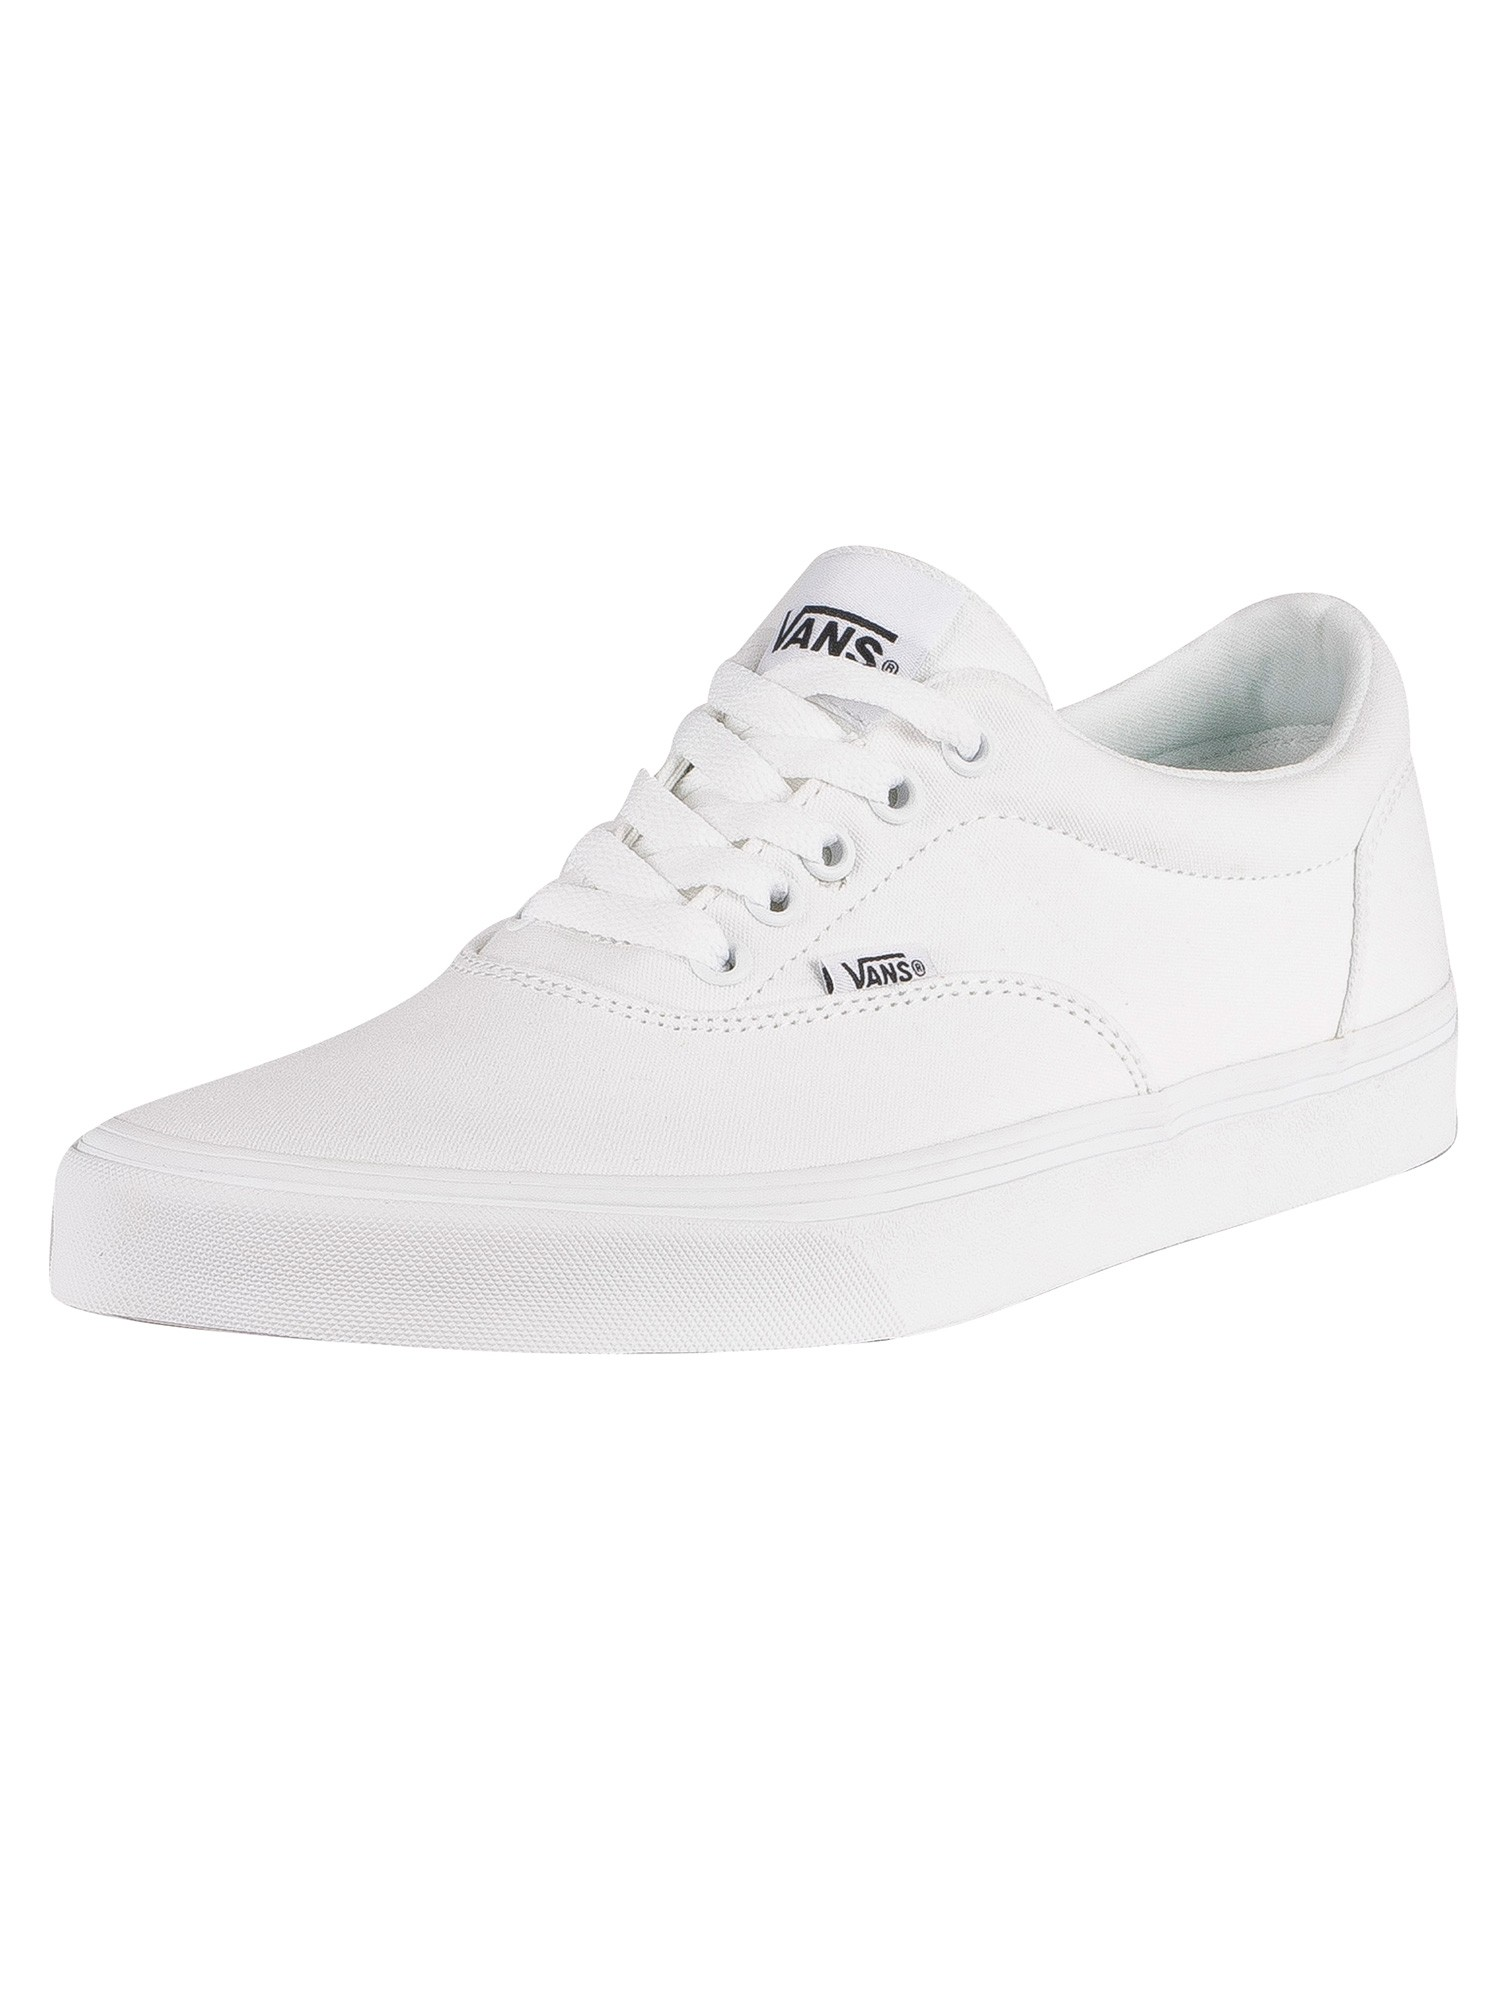 Doheny Canvas Trainers, White